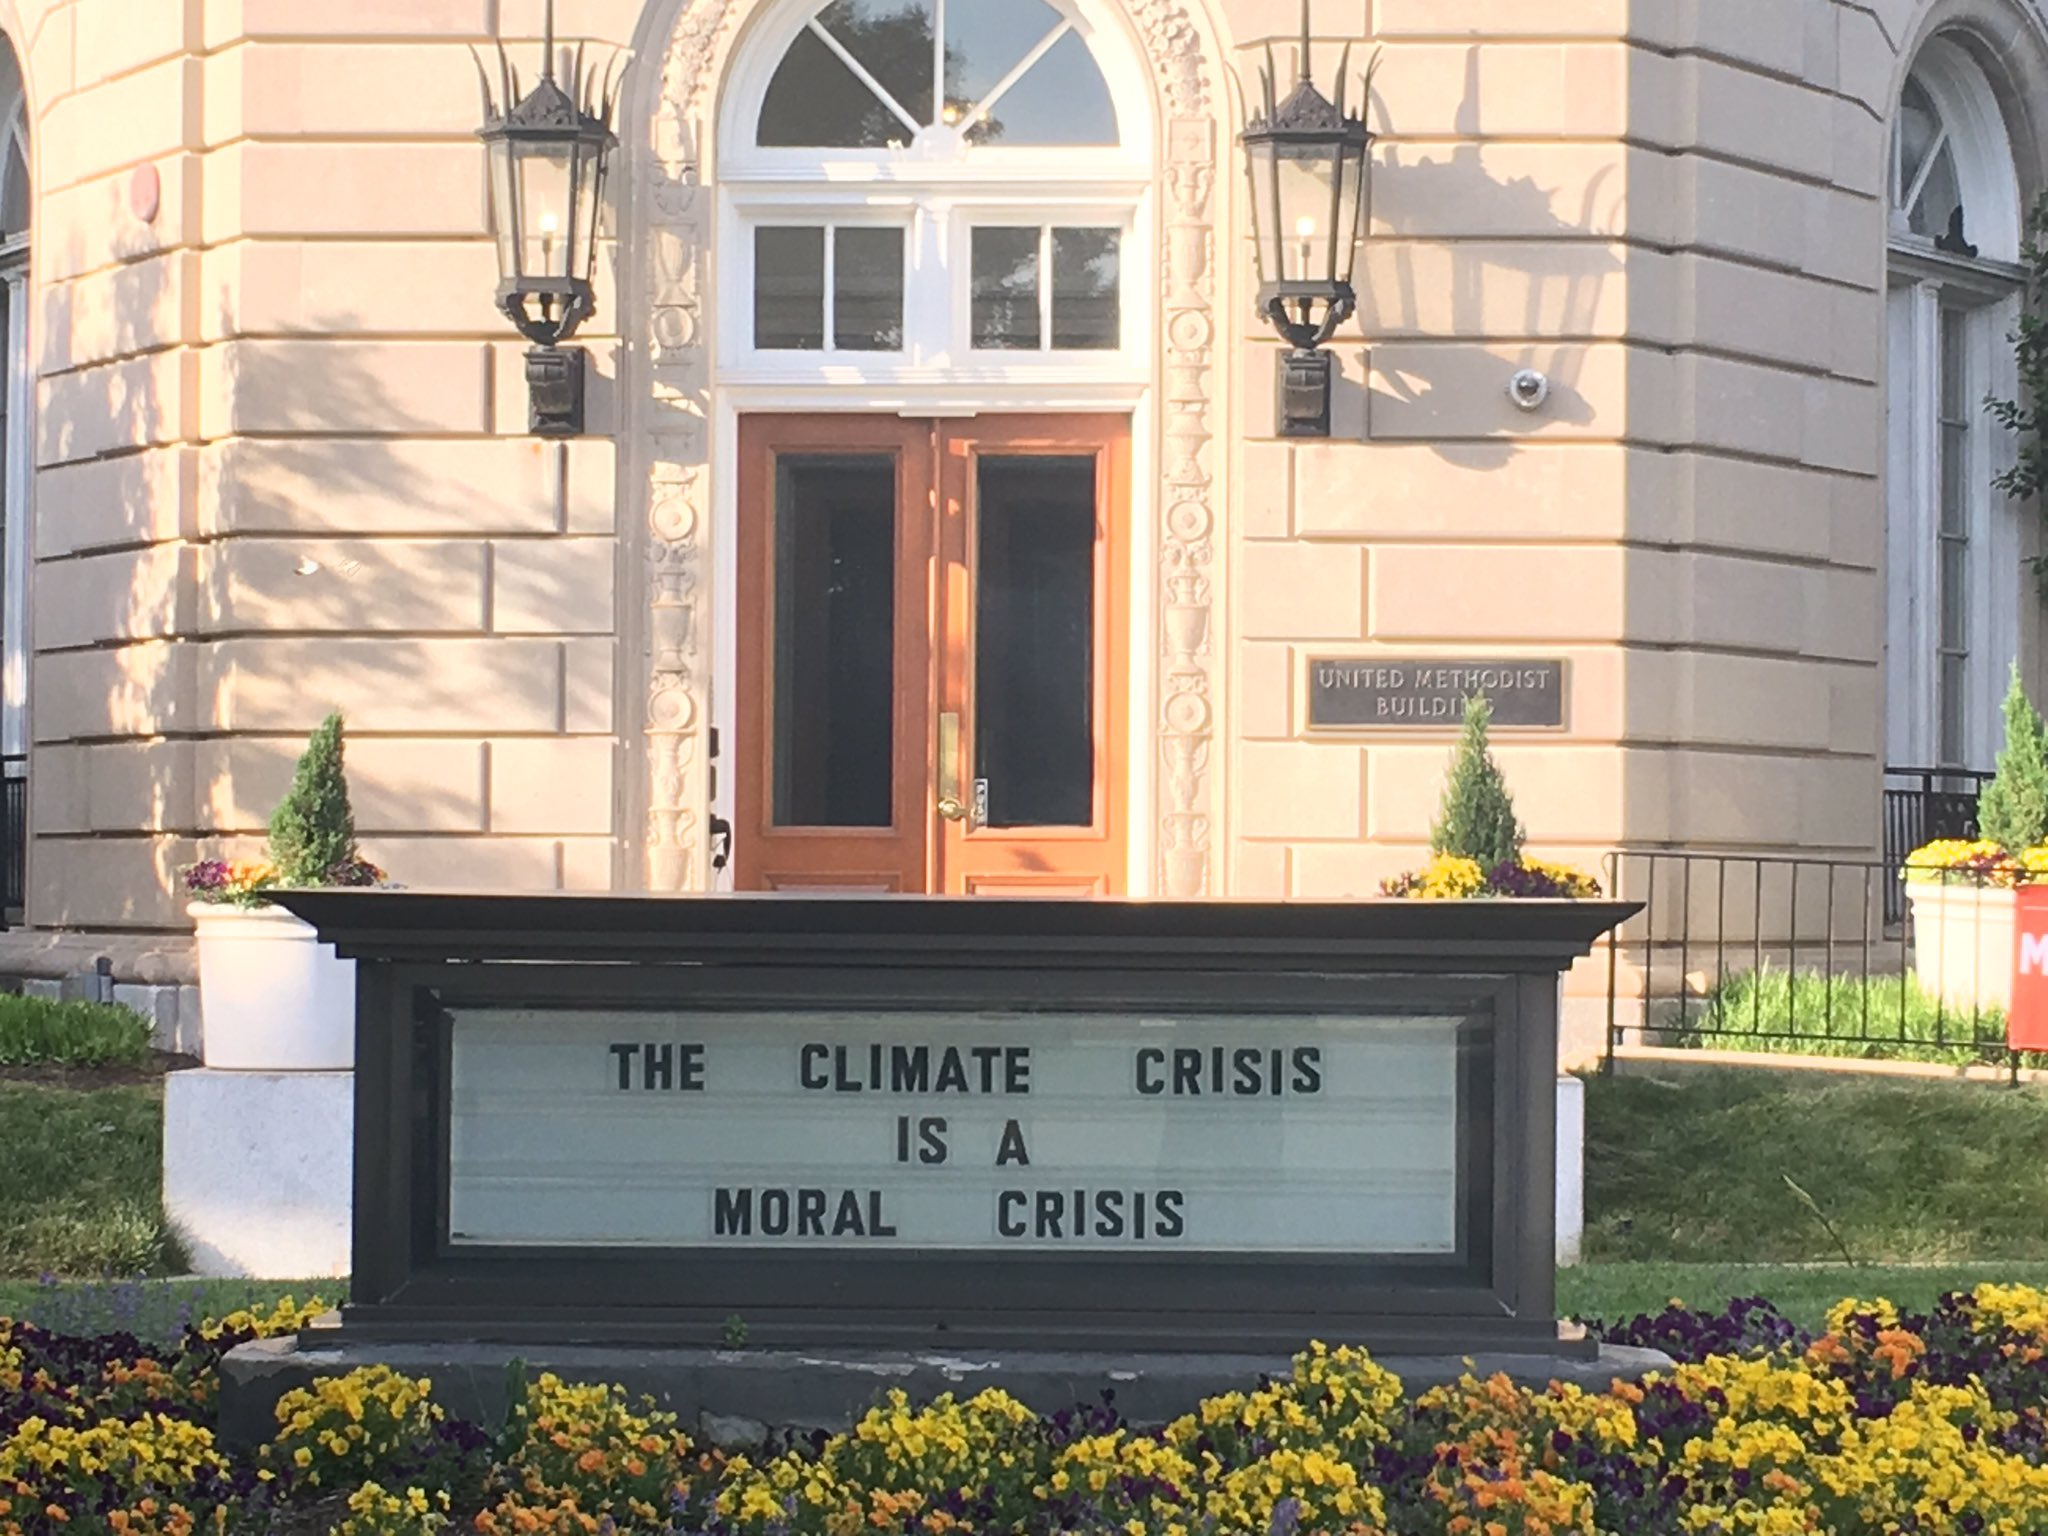 Today, United Methodists are marching in DC and across the world for action on climate change. #climatemarch https://t.co/YK2sZwgURe